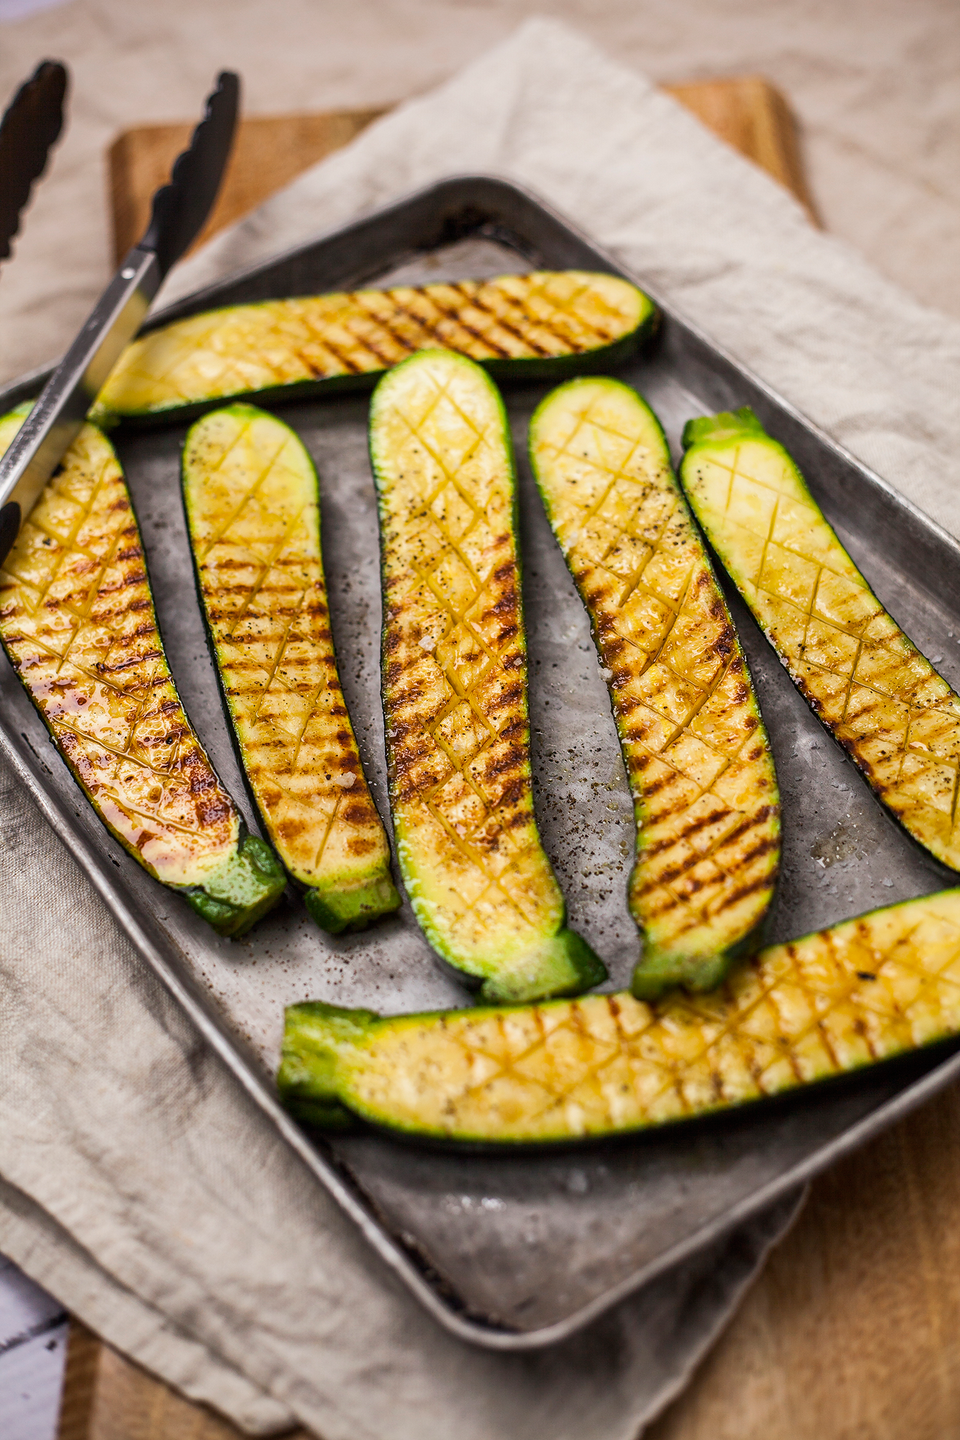 """<p>Vegetables always tasty delicious cooked on the barbecue, so follow this easy courgette recipe for a healthy delight.</p><p><strong>Recipe: <a href=""""https://www.goodhousekeeping.com/uk/food/recipes/a538234/bbq-courgettes/"""" rel=""""nofollow noopener"""" target=""""_blank"""" data-ylk=""""slk:Barbecued courgettes"""" class=""""link rapid-noclick-resp"""">Barbecued courgettes</a></strong></p>"""